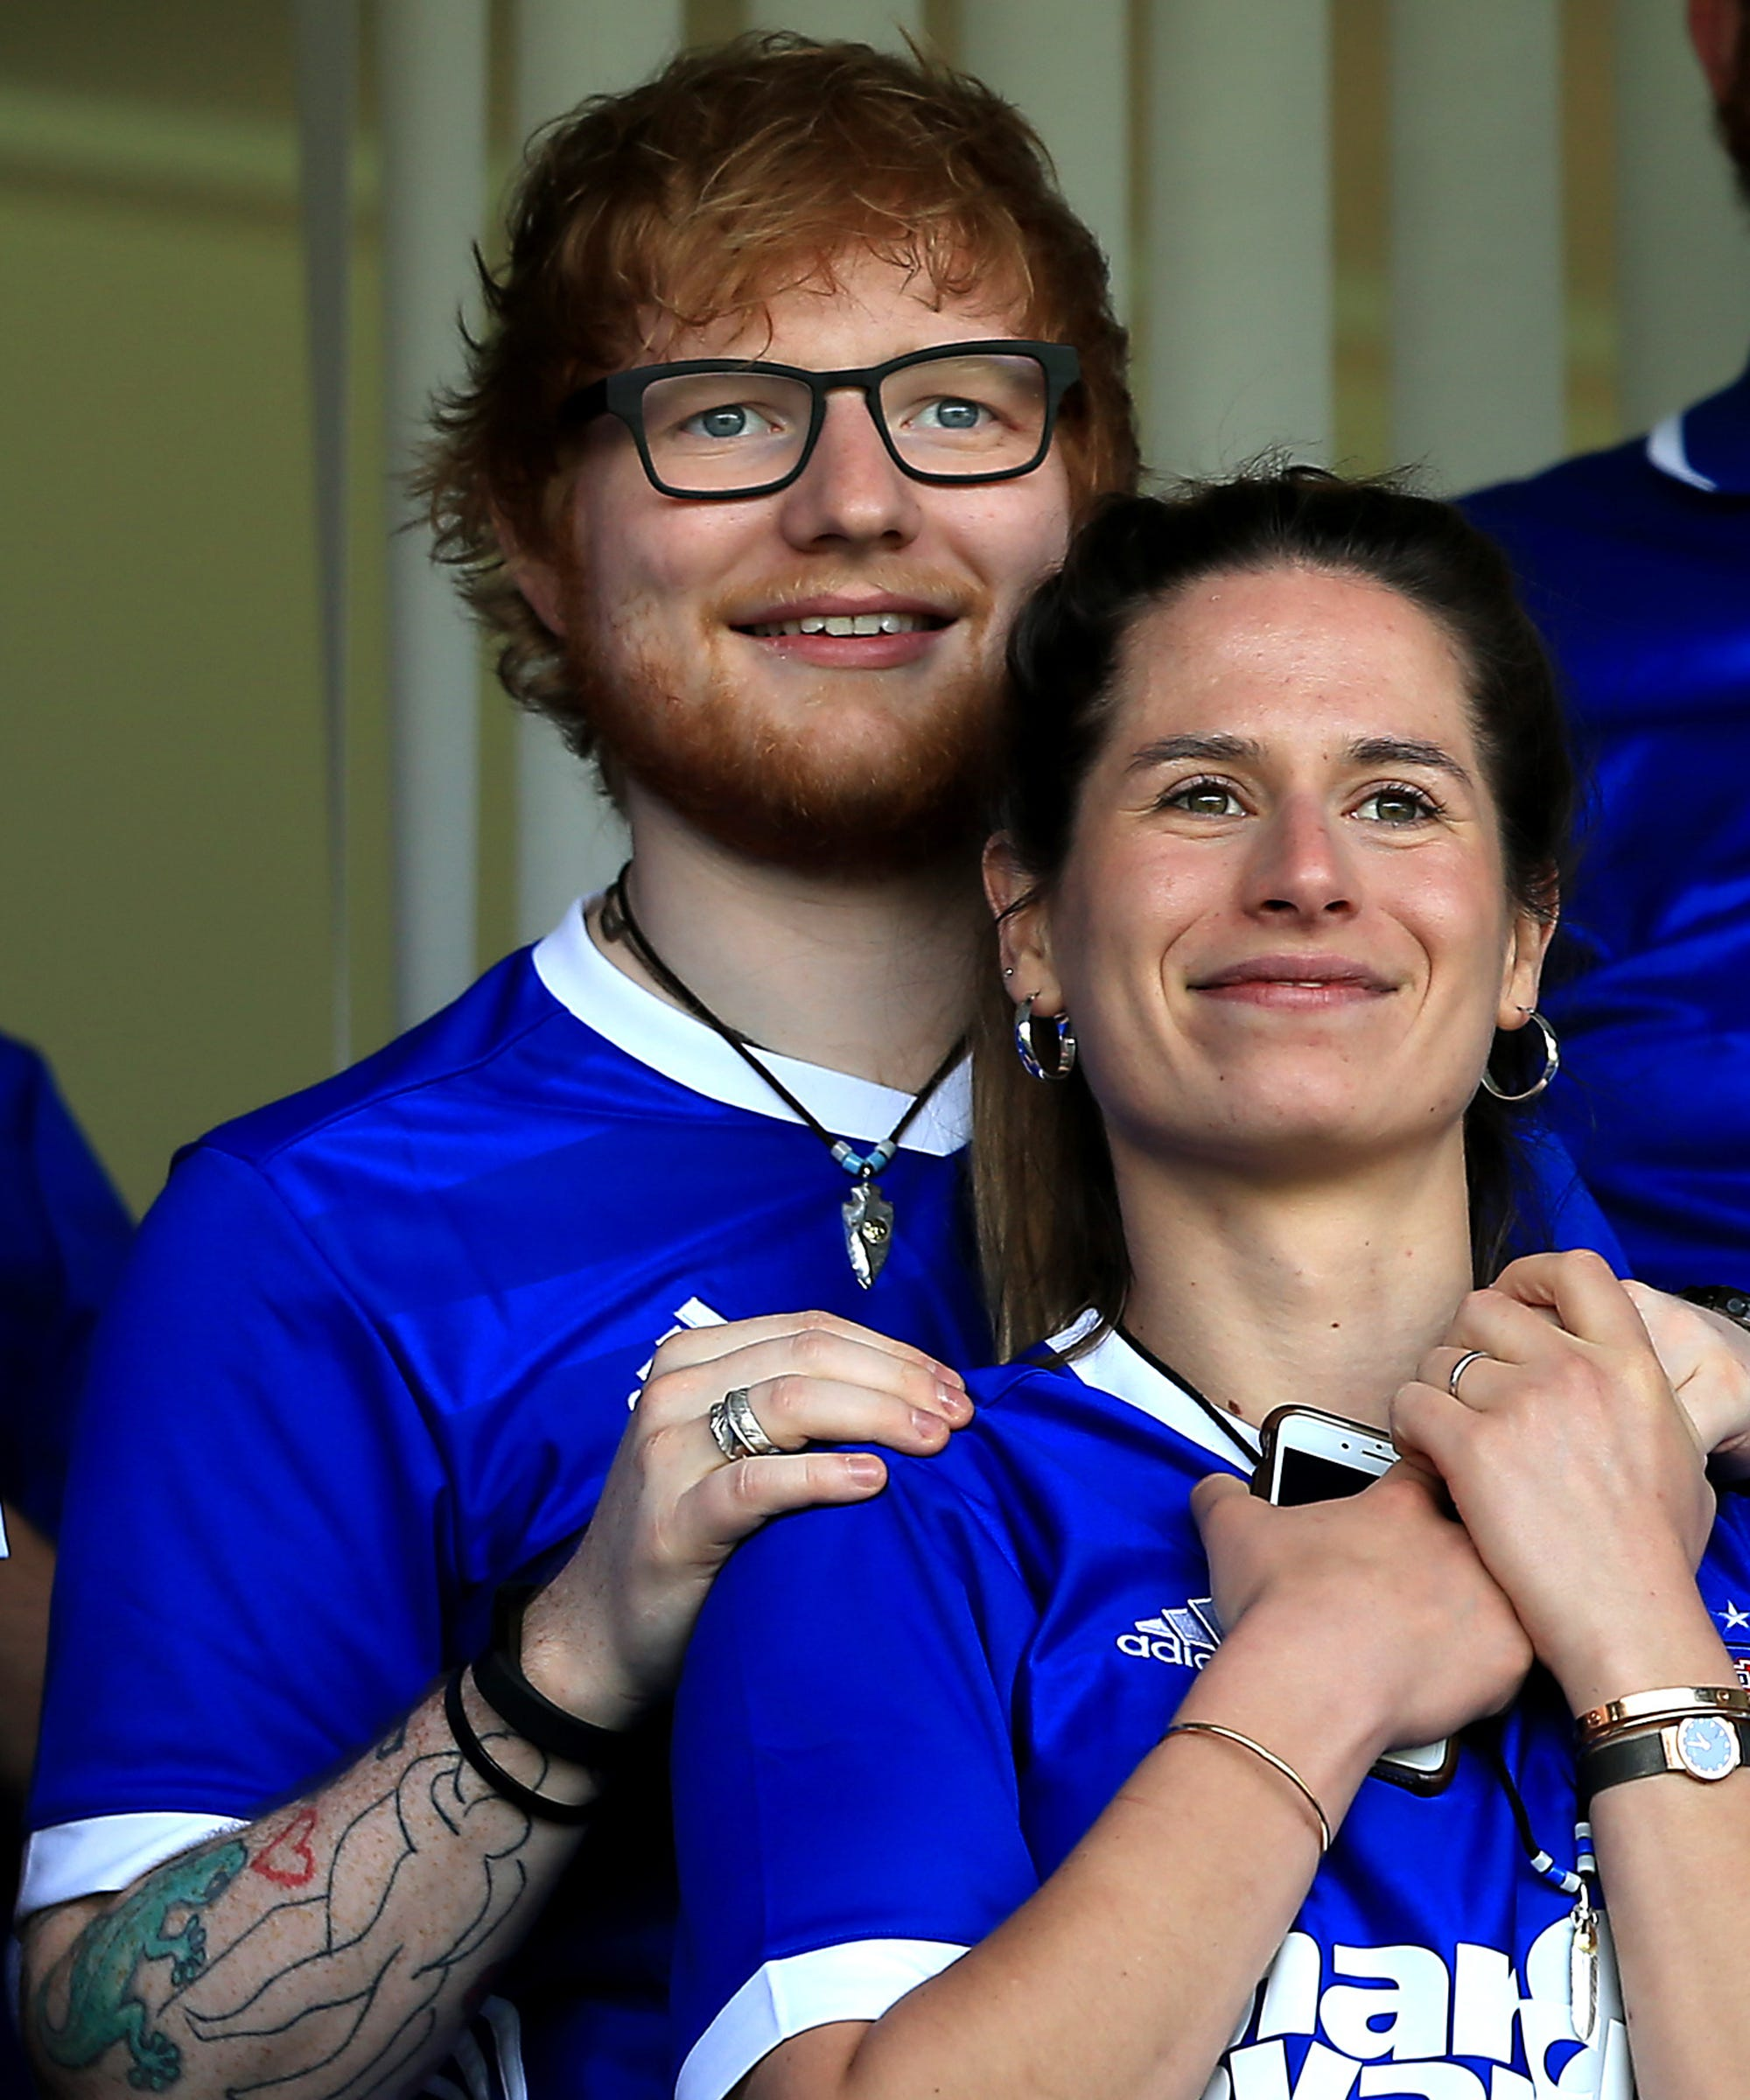 Ed Sheeran Finally Puts Those Marriage Rumors To Rest